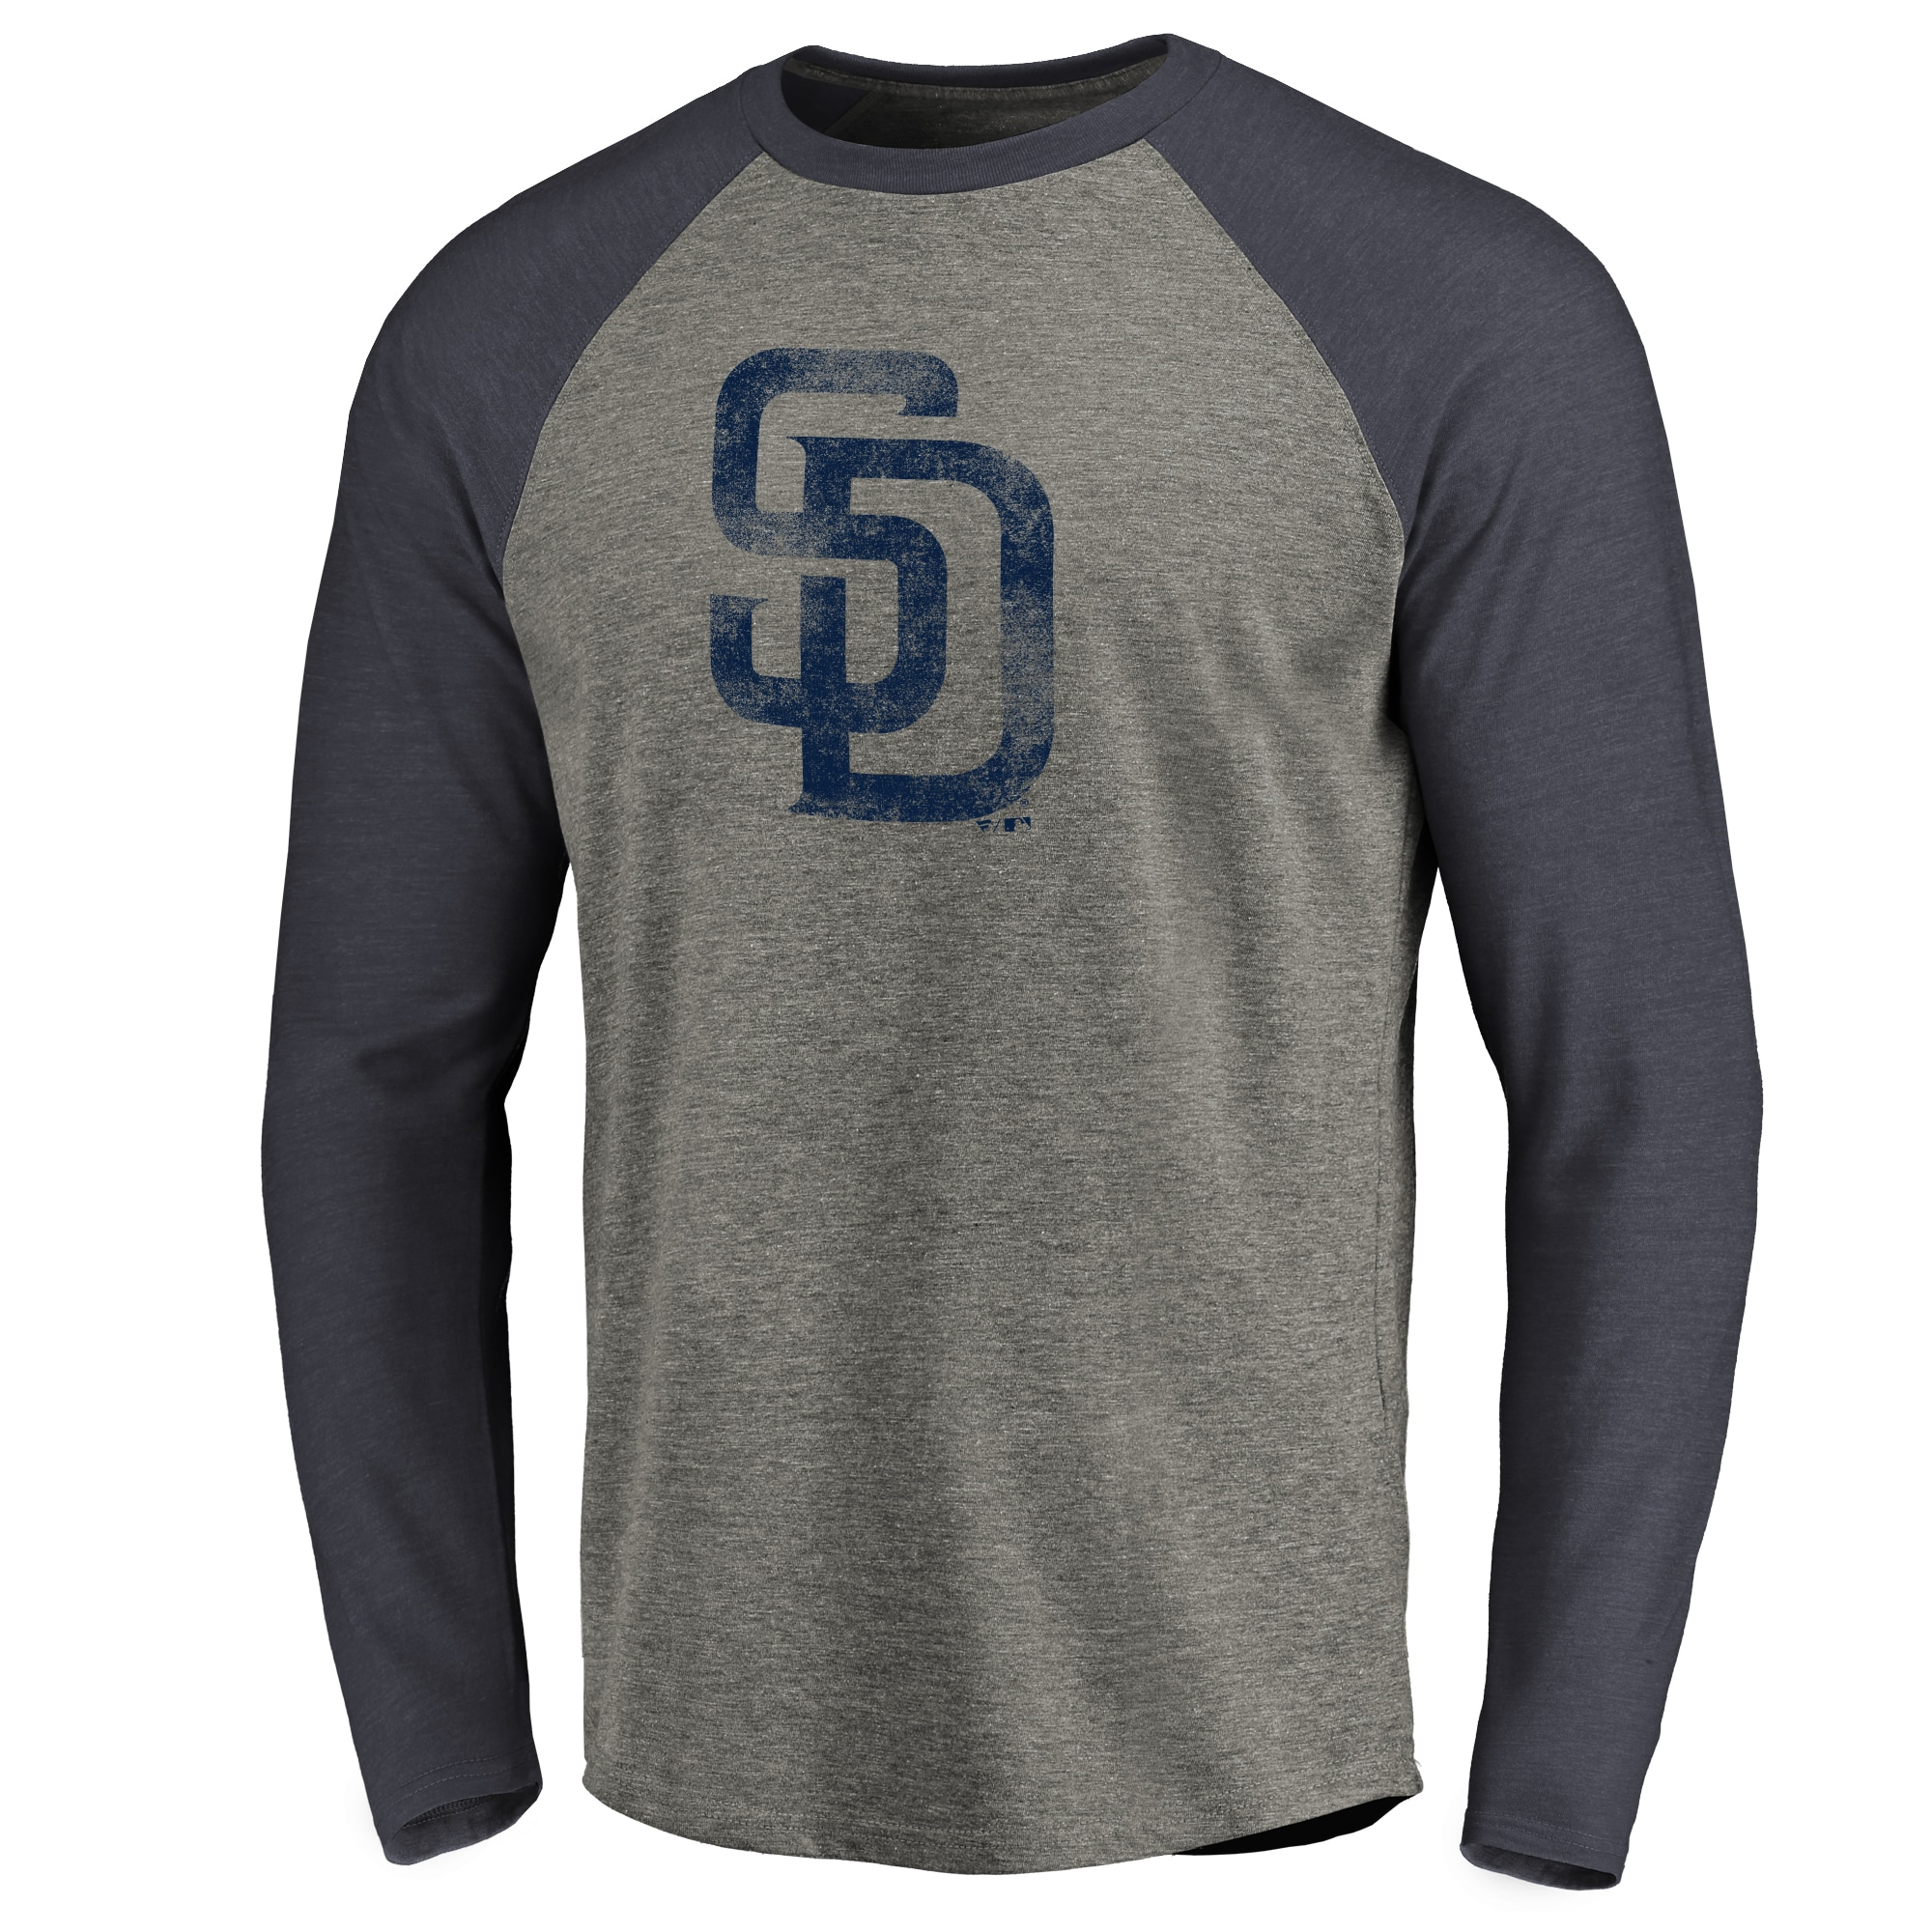 San Diego Padres Distressed Team Raglan Tri-Blend Long Sleeve T-shirt - Ash